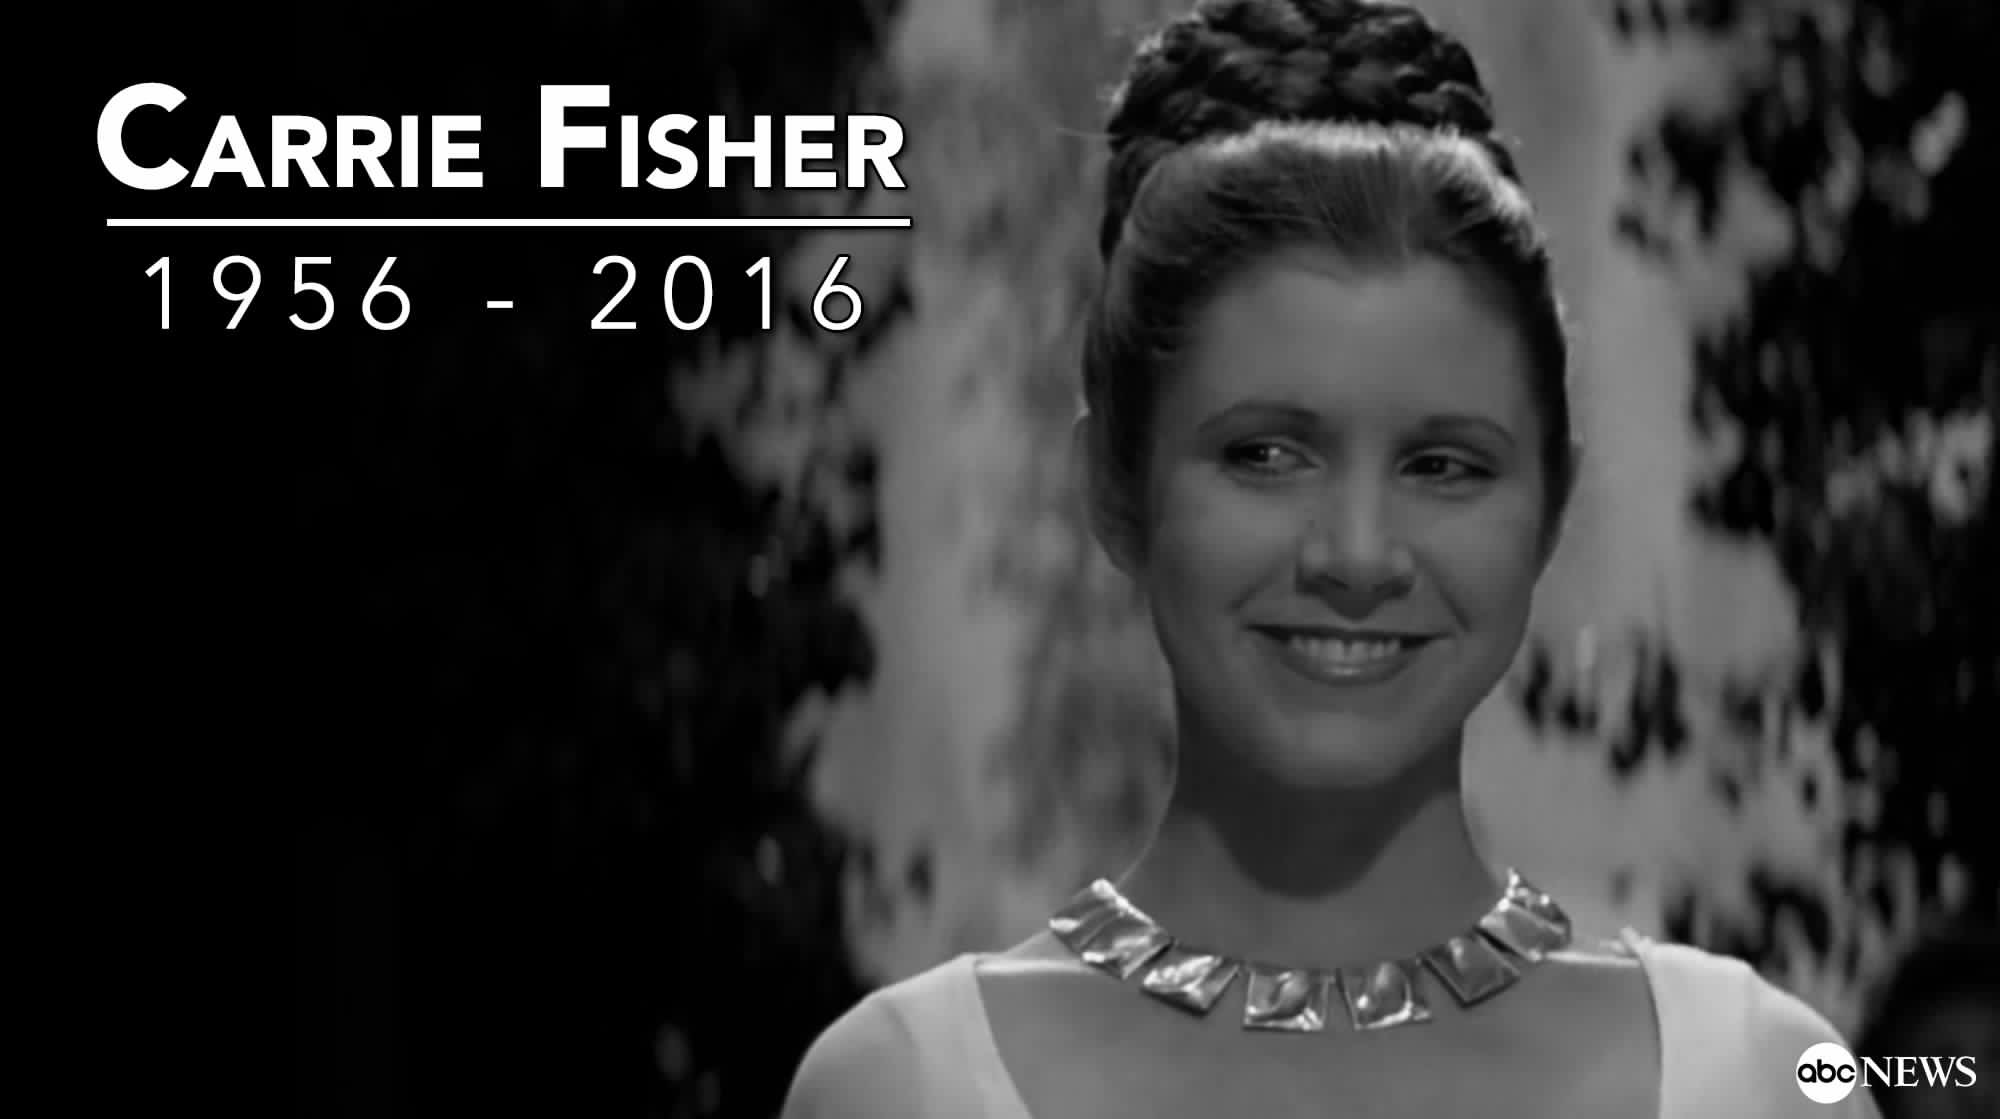 2000x1119 - Carrie Fisher Wallpapers 30